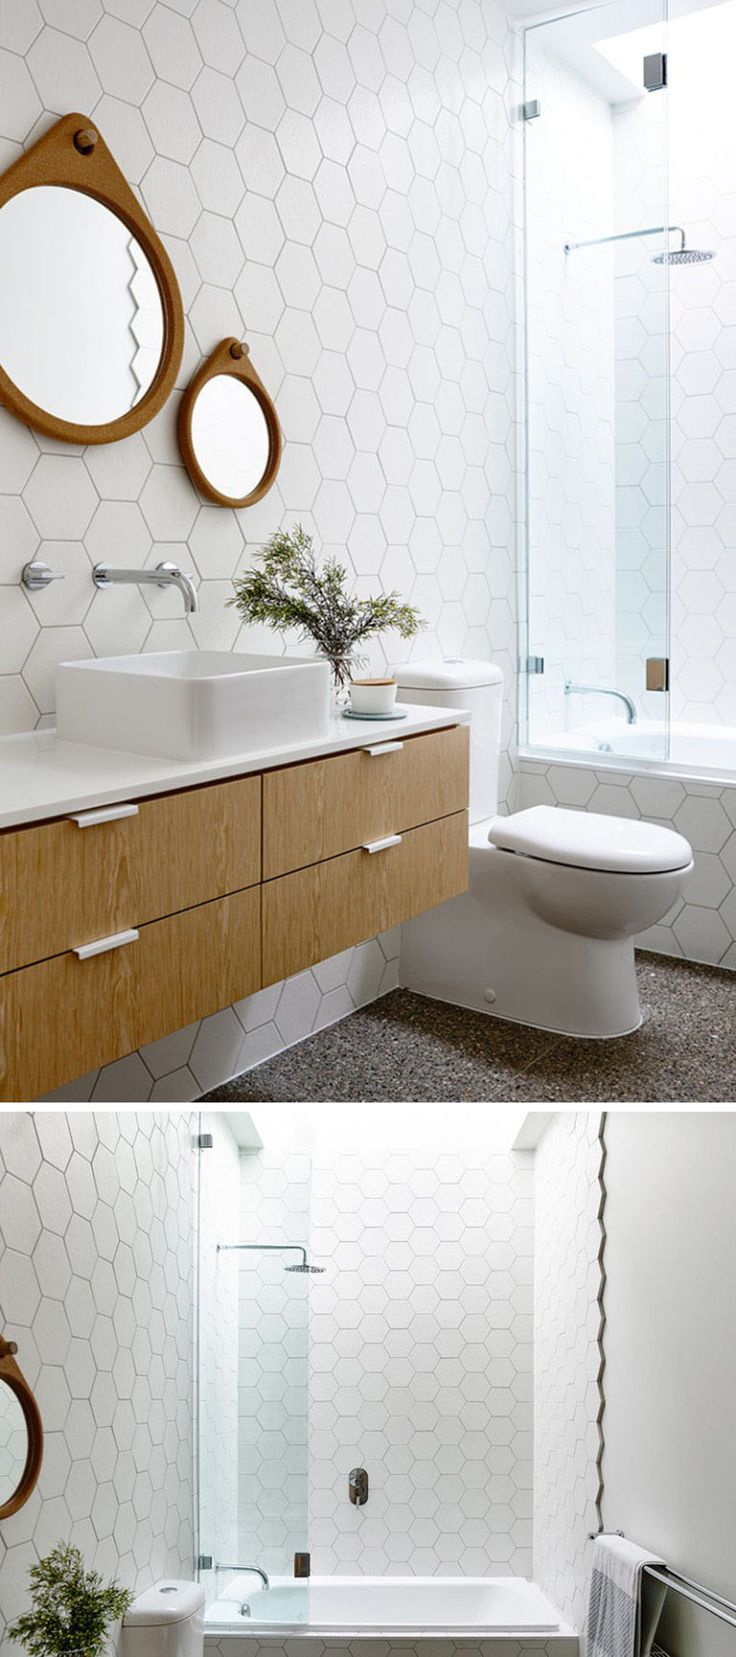 19 Ideas For Using Hexagons In Interior Design And Architecture // The bathroom in this house features floor to ceiling white hexagonal tiles on the walls.